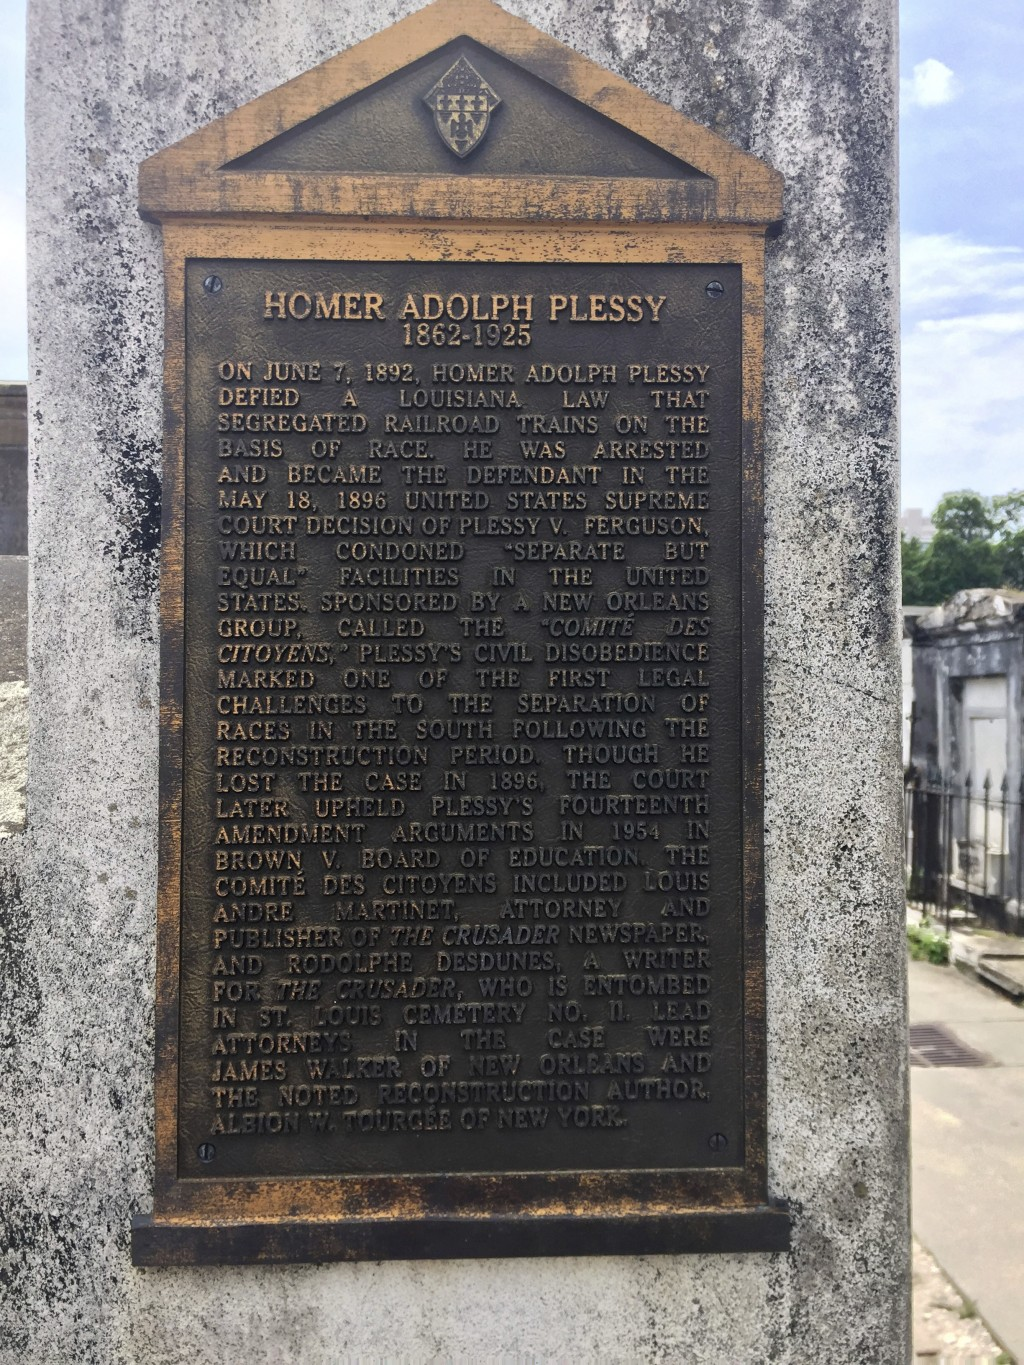 This June 3, 2018 photo shows a marker on the burial site for Homer Plessy at St. Louis No. 1 Cemetery in New Orleans. Plessy was an important figure ...